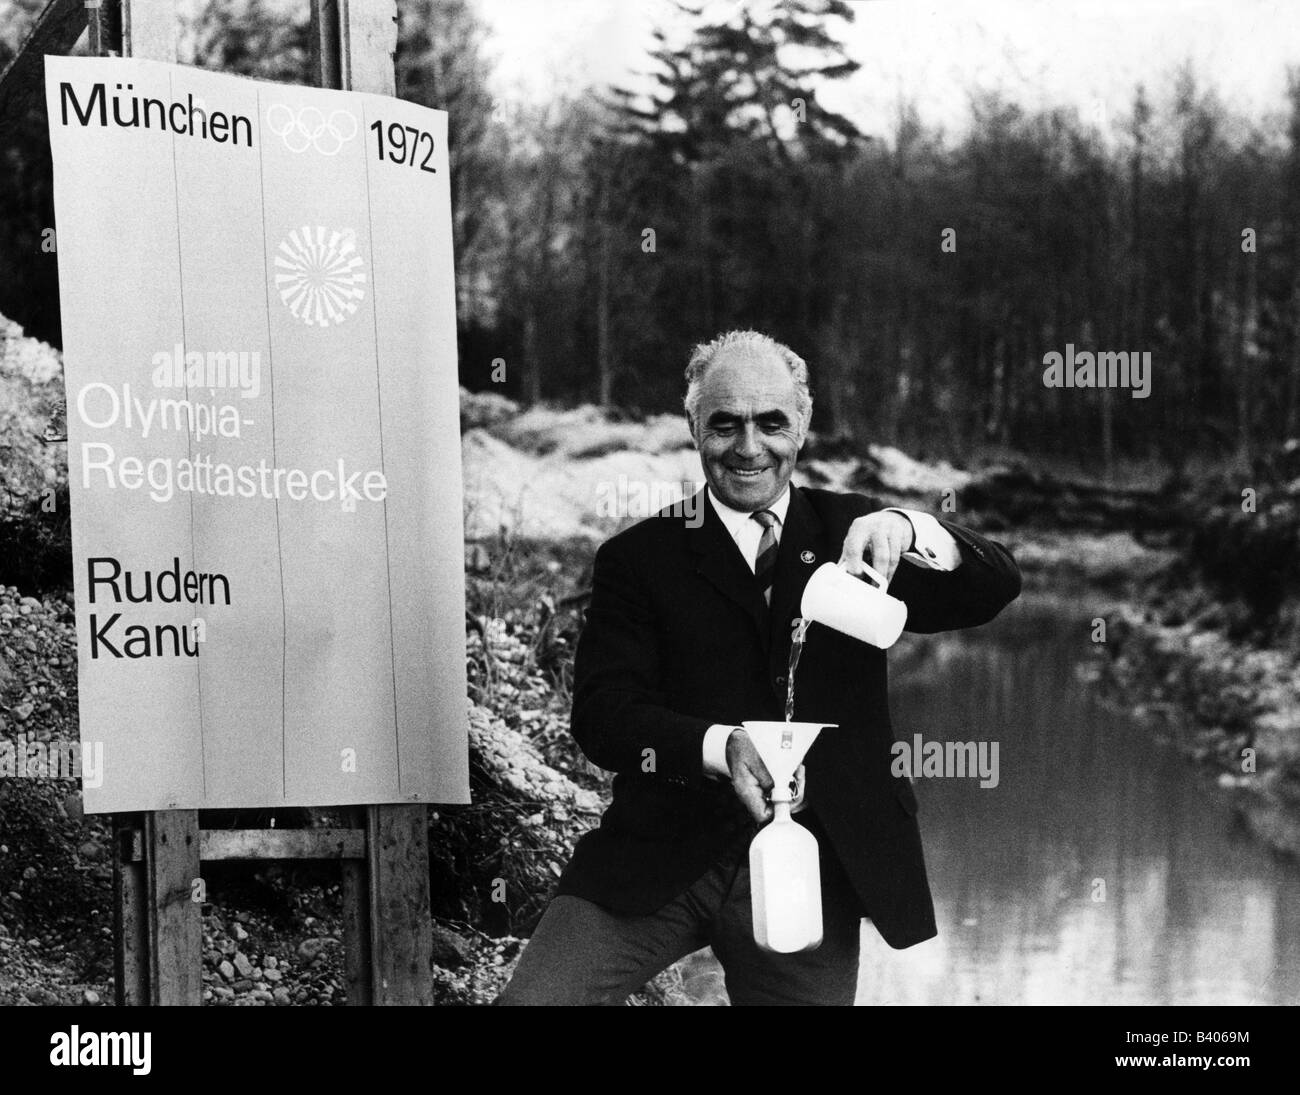 Soellner, Paul, 5.6.1911 - 8.4.1991, German athlete (rowing), takes water from the Olympic regatta course for christening - Stock Image